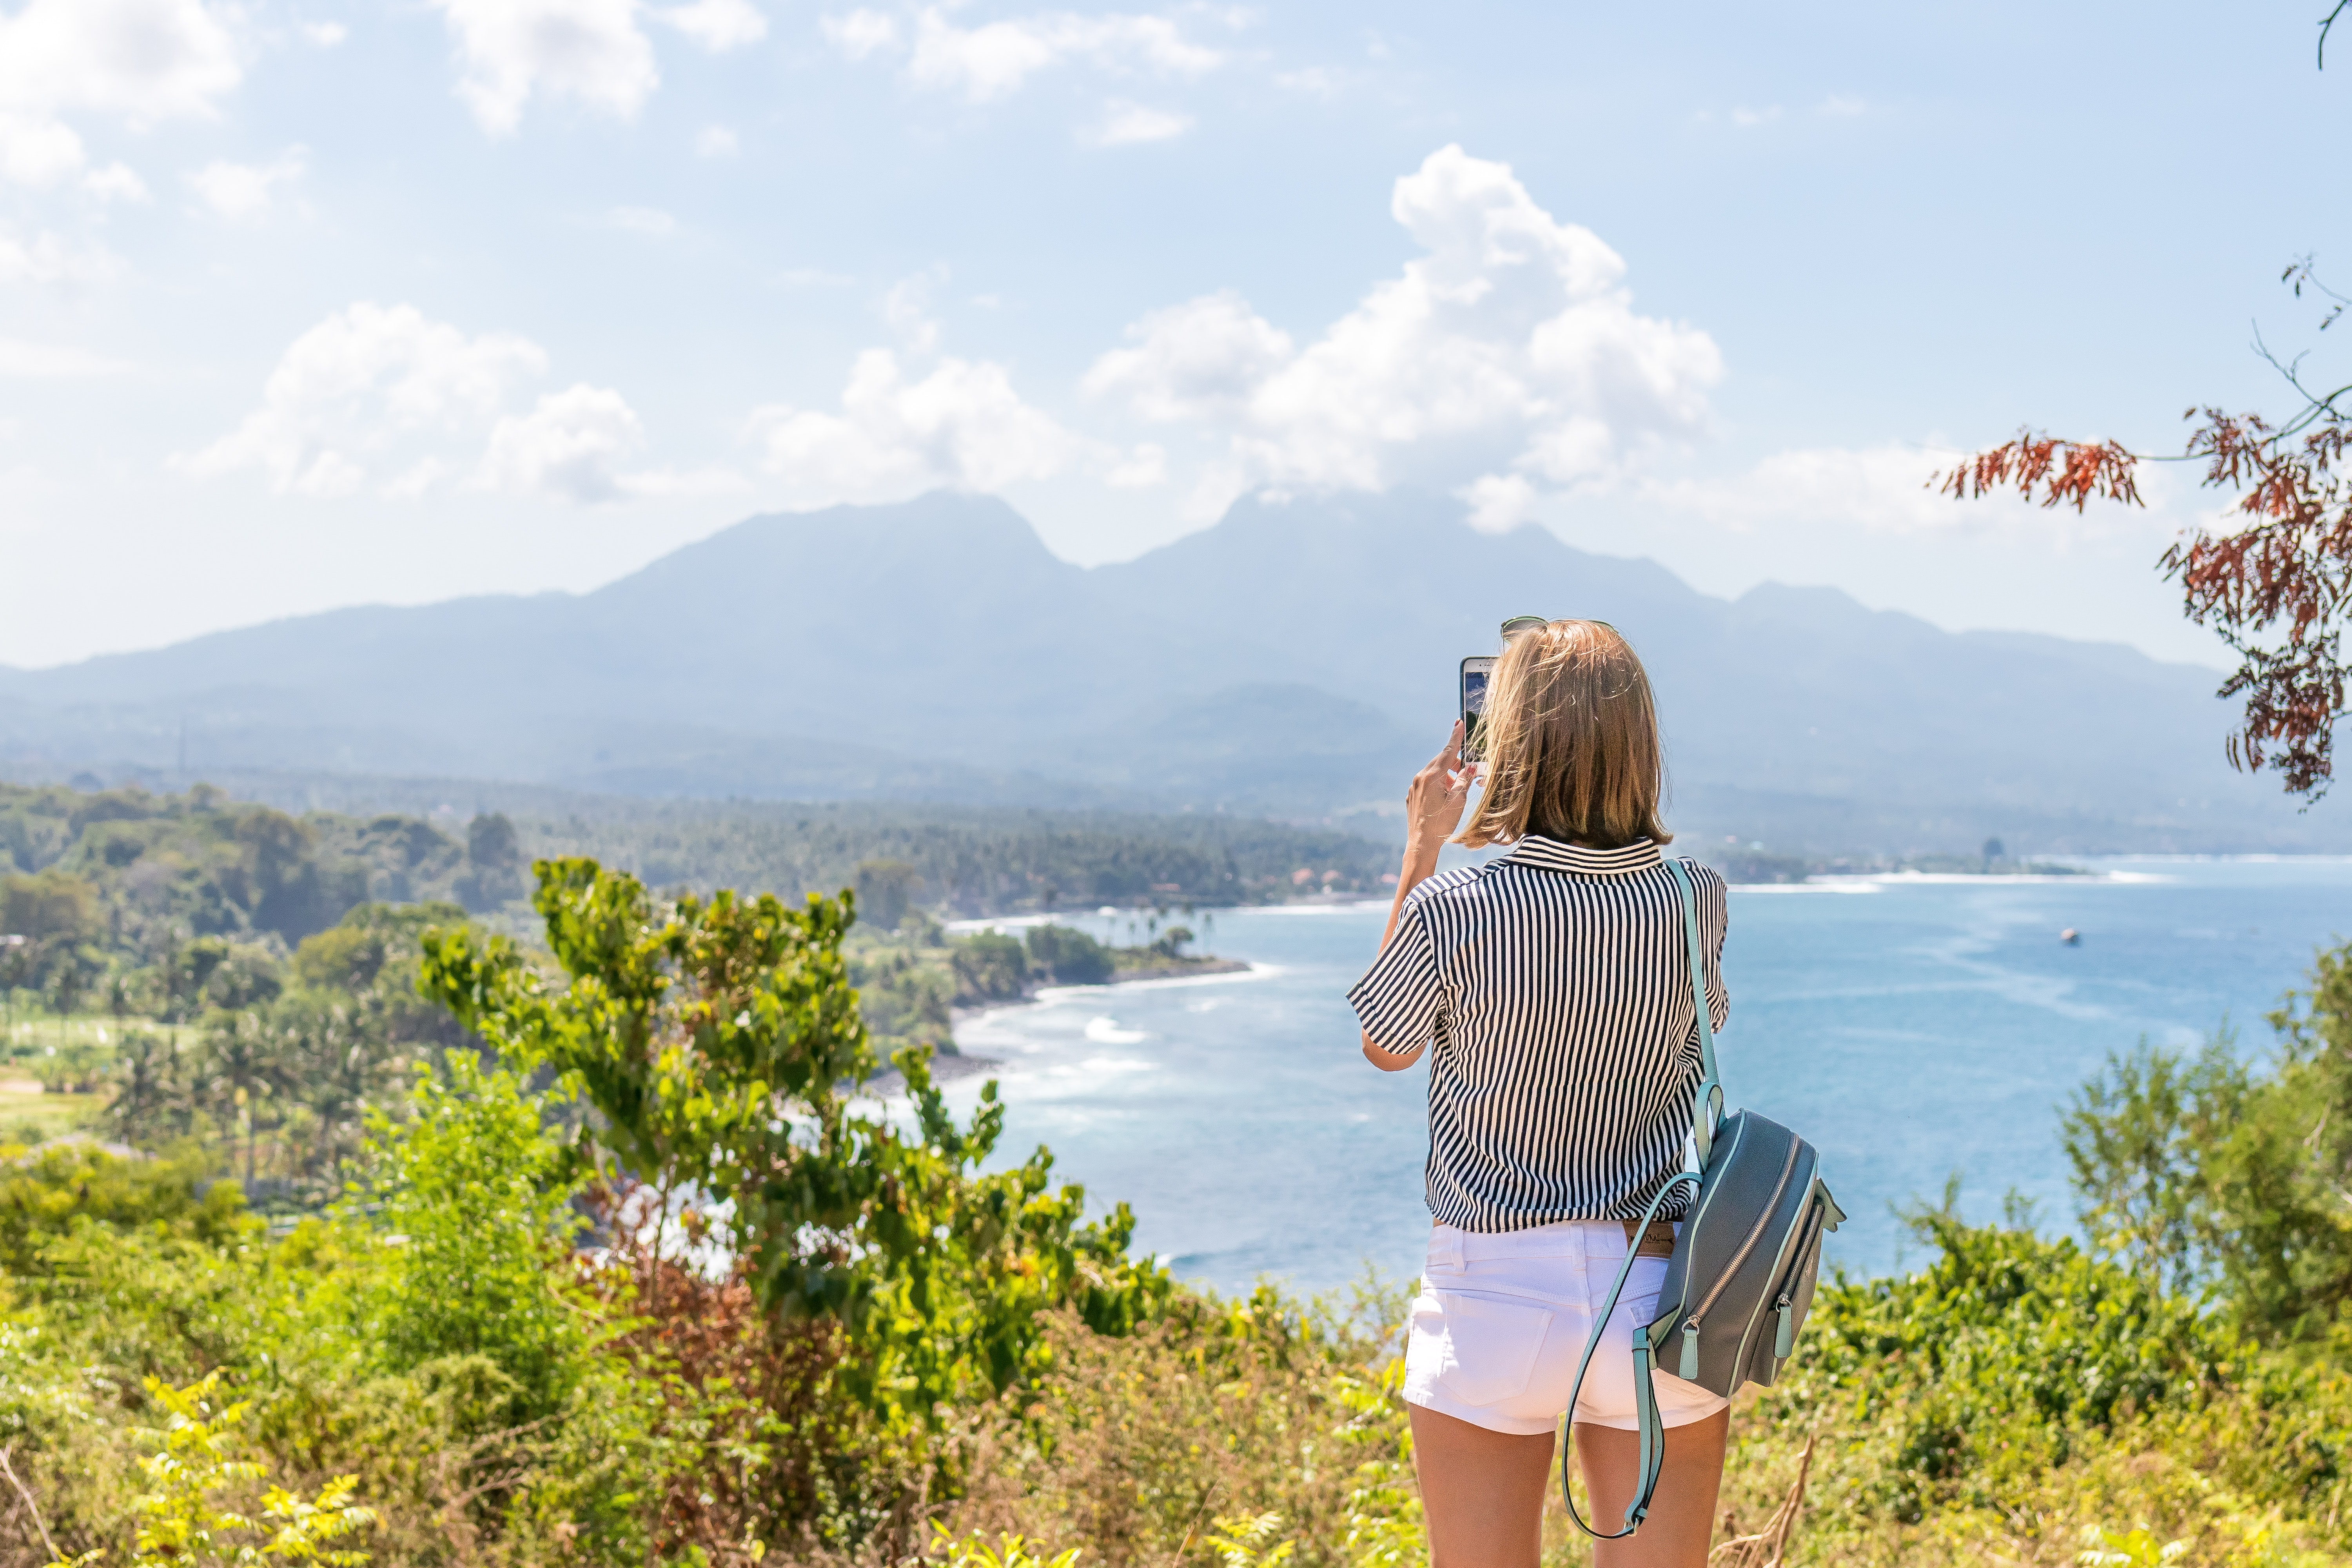 Woman traveling alone in front of landscape